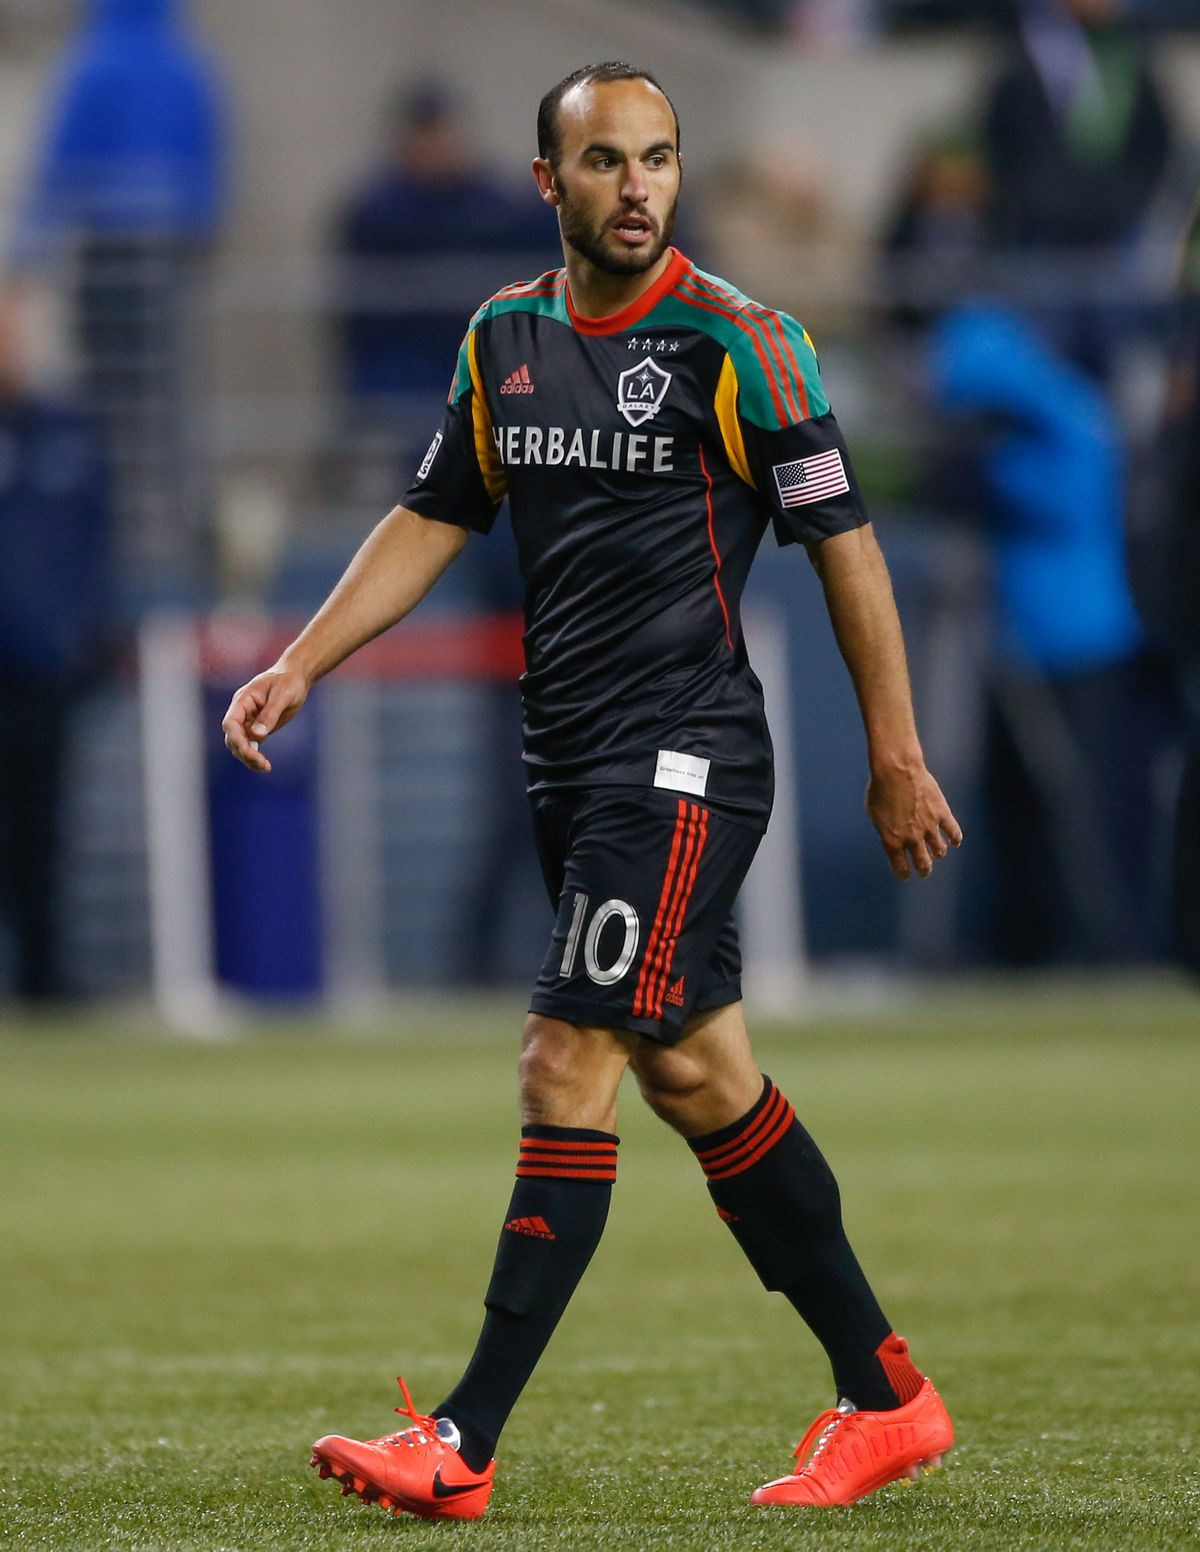 Los Angeles Galaxy v Seattle Sounders - Western Conference Final - Leg 2